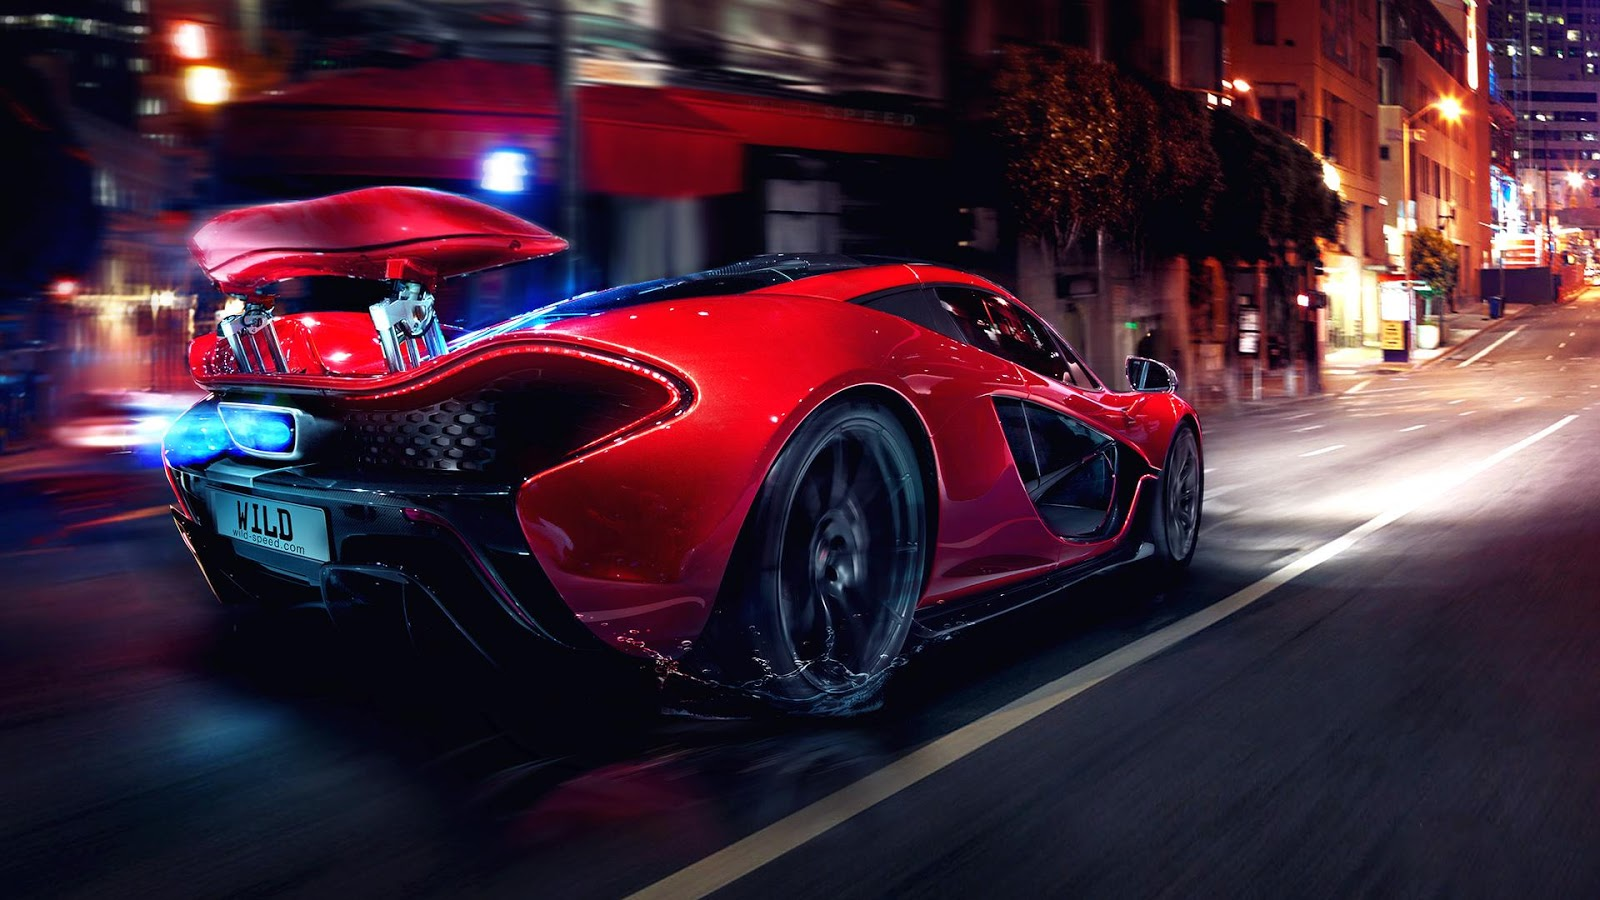 4k car wallpapers 0 1 apk download android - 4k wallpaper for cars ...